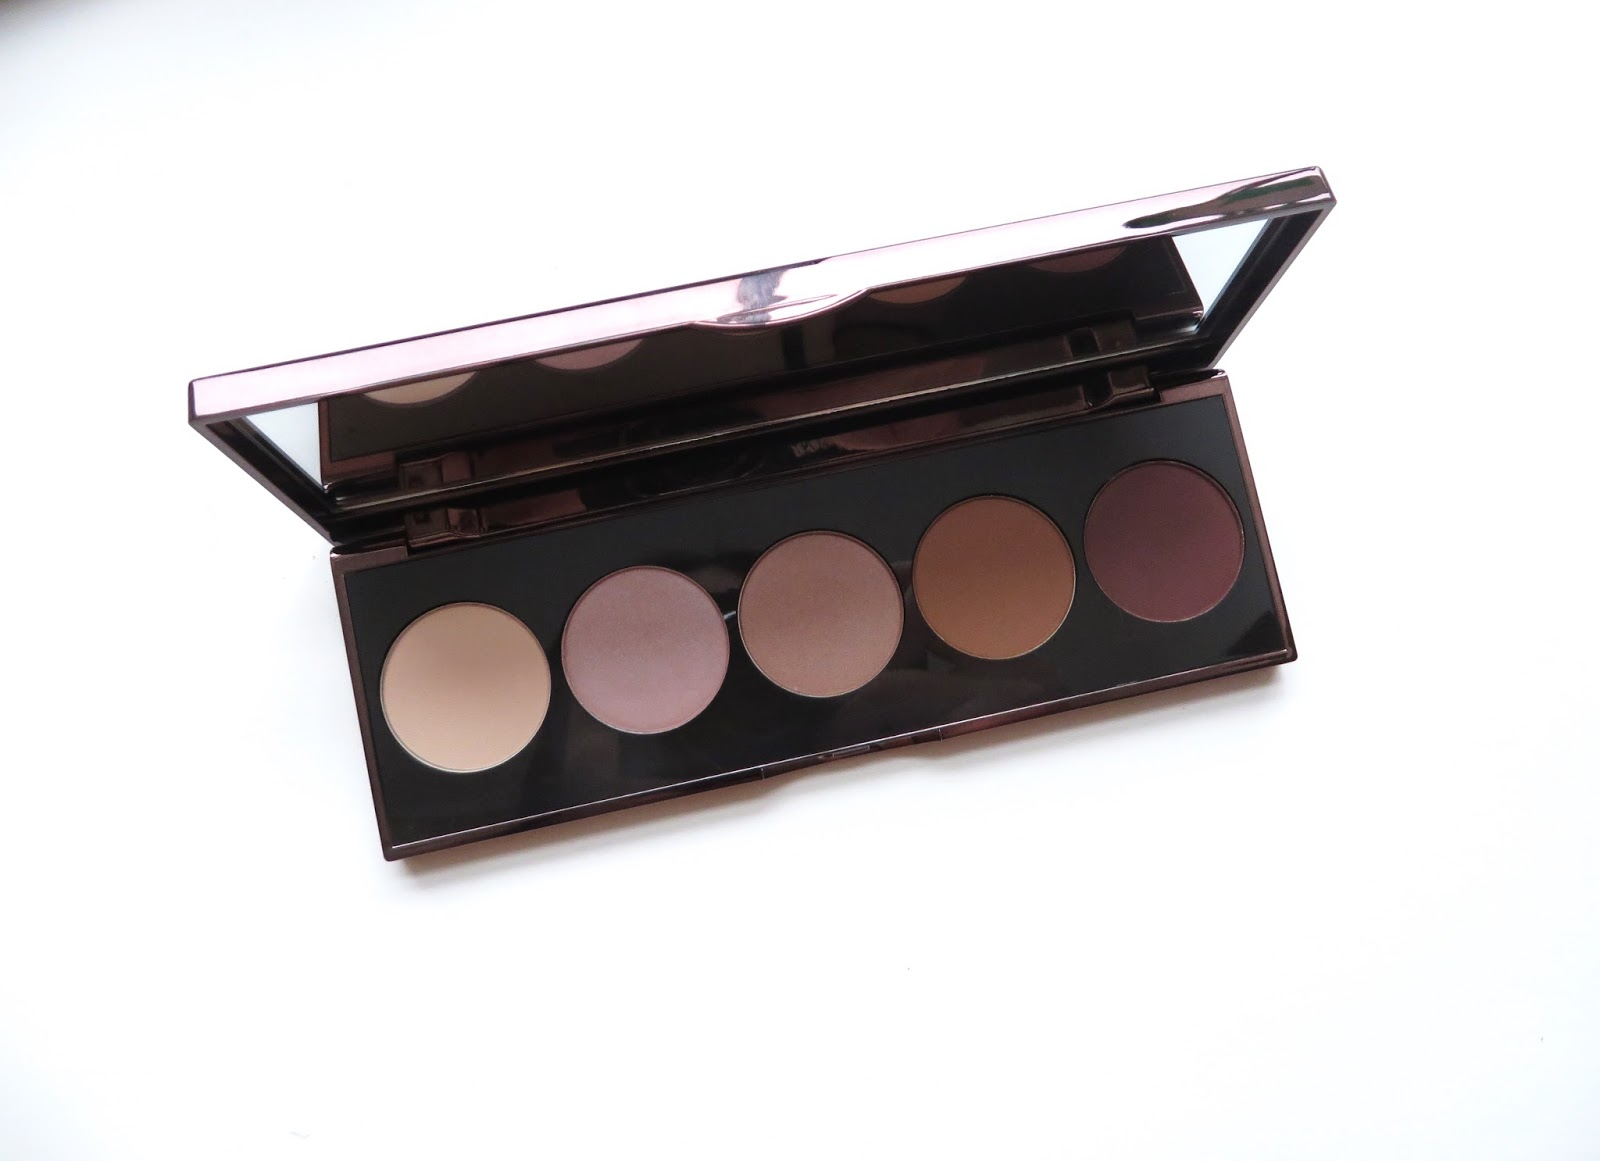 becca ombre rouge eye palette, becca cosmetics, eyeshadow, eyeshadow palette, make up, beauty, beauty products,